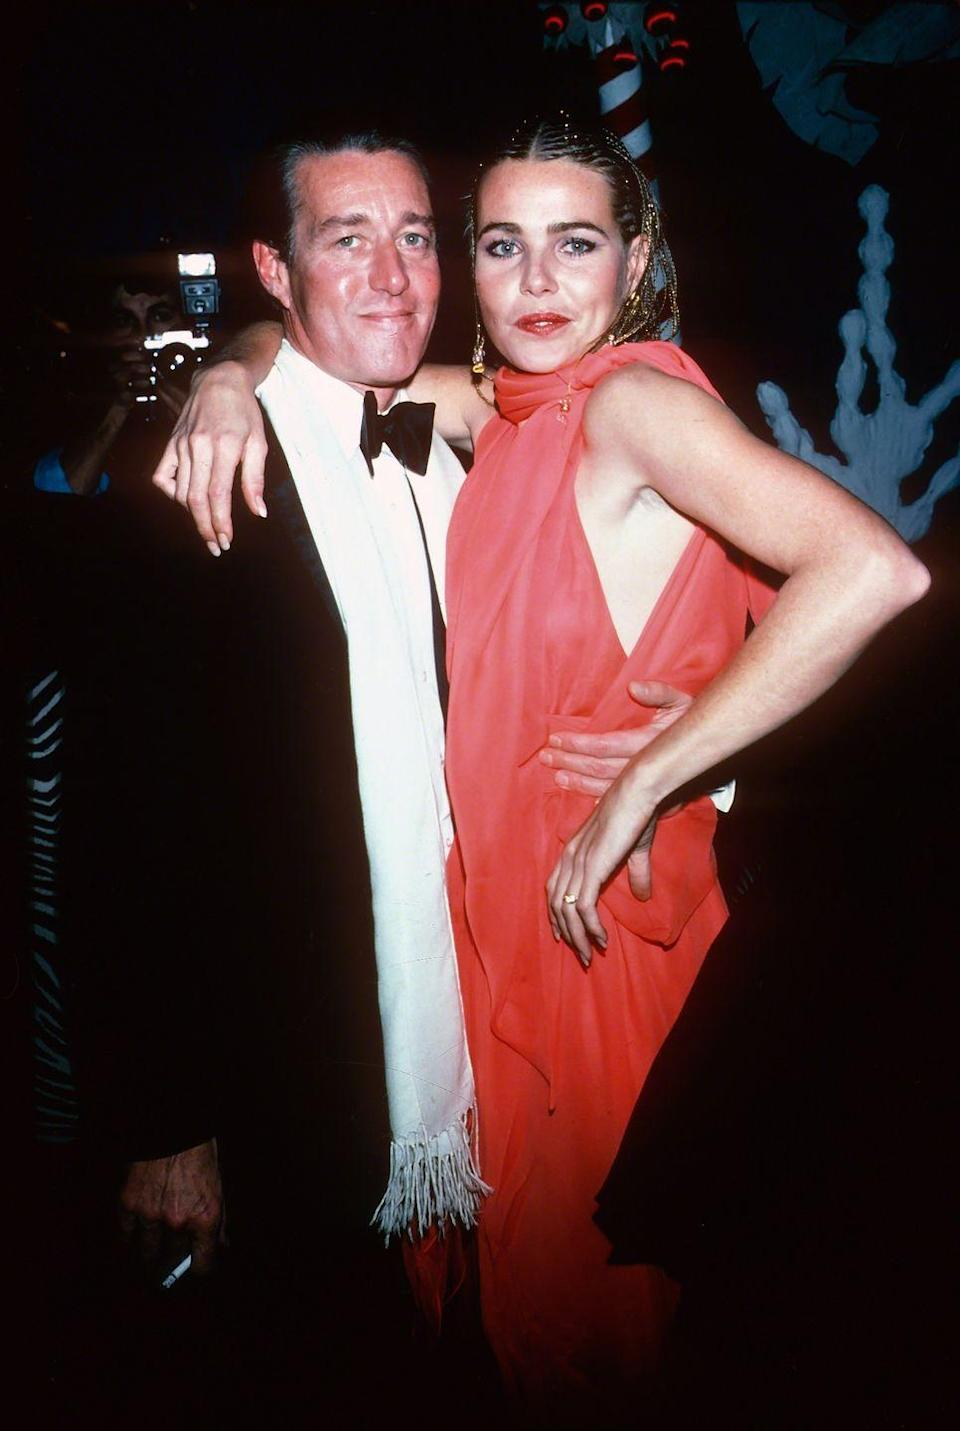 <p>Halston socialized with some of Hollywood's biggest stars. He's pictured here with actress and model Margaux Hemingway.</p>